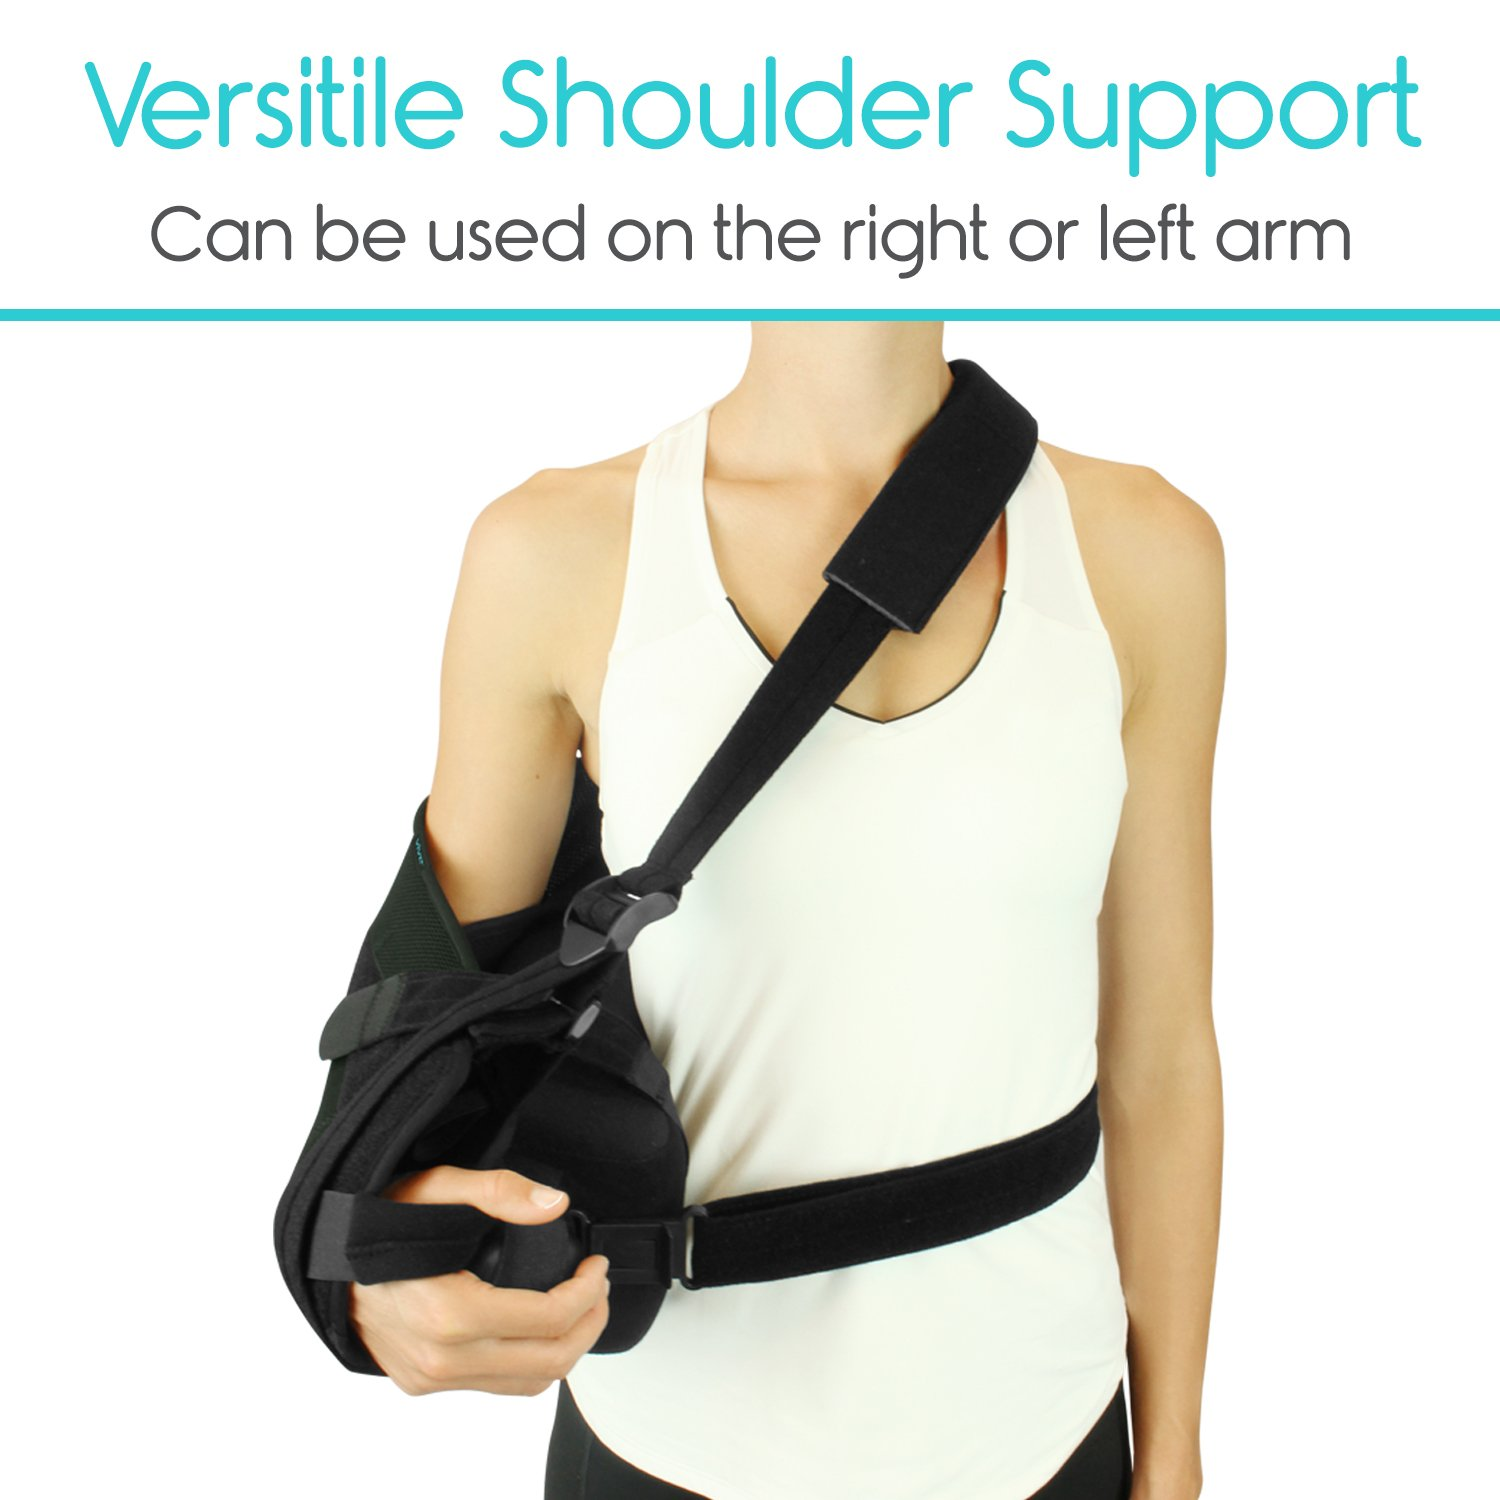 Vive Shoulder Sling - Abduction Immobilizer for Injury Support - Pain Relief Arm Pillow for Rotator Cuff, Sublexion, Surgery, Dislocated, Broken Arm - Brace Includes Pocket Strap, Stress Ball, Wedge by VIVE (Image #7)